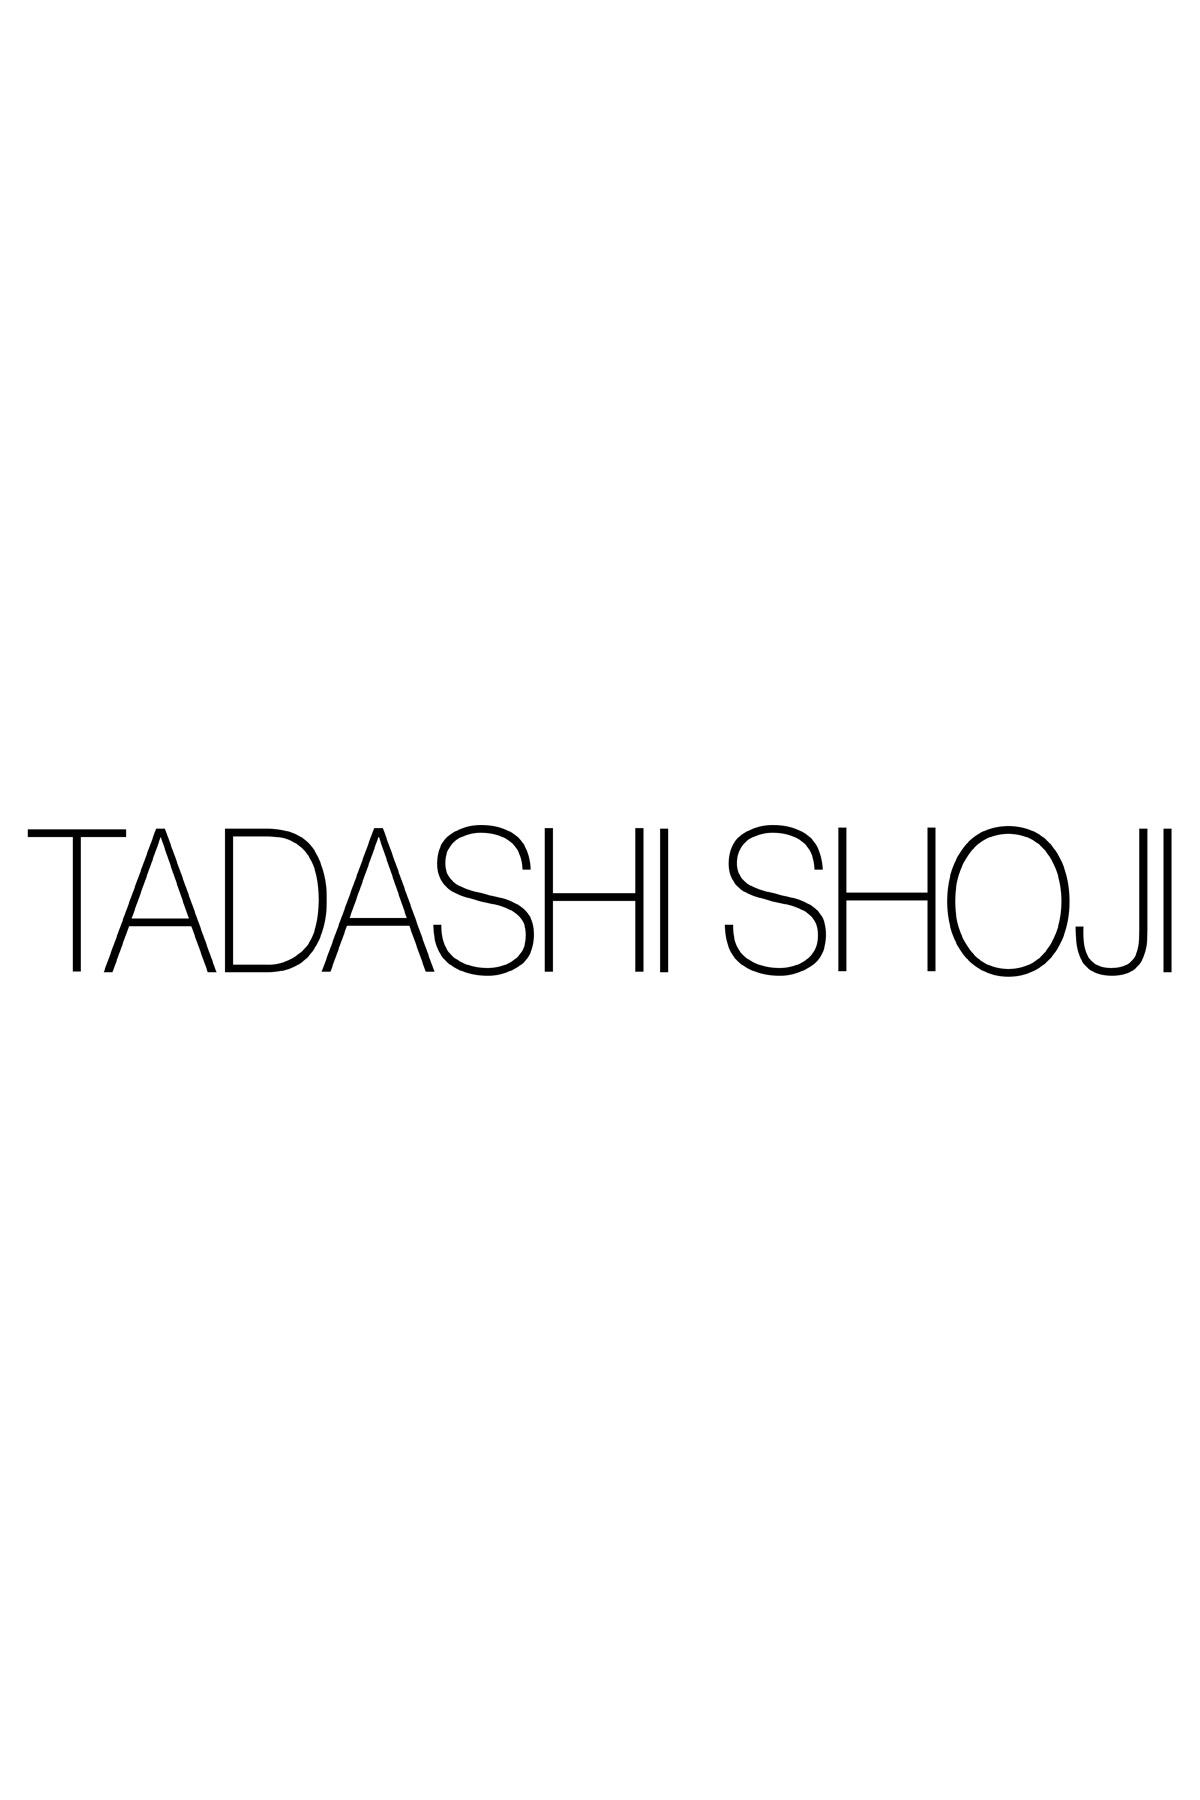 Tadashi Shoji - Corded Embroidery on Tulle A-Line Dress - Detail